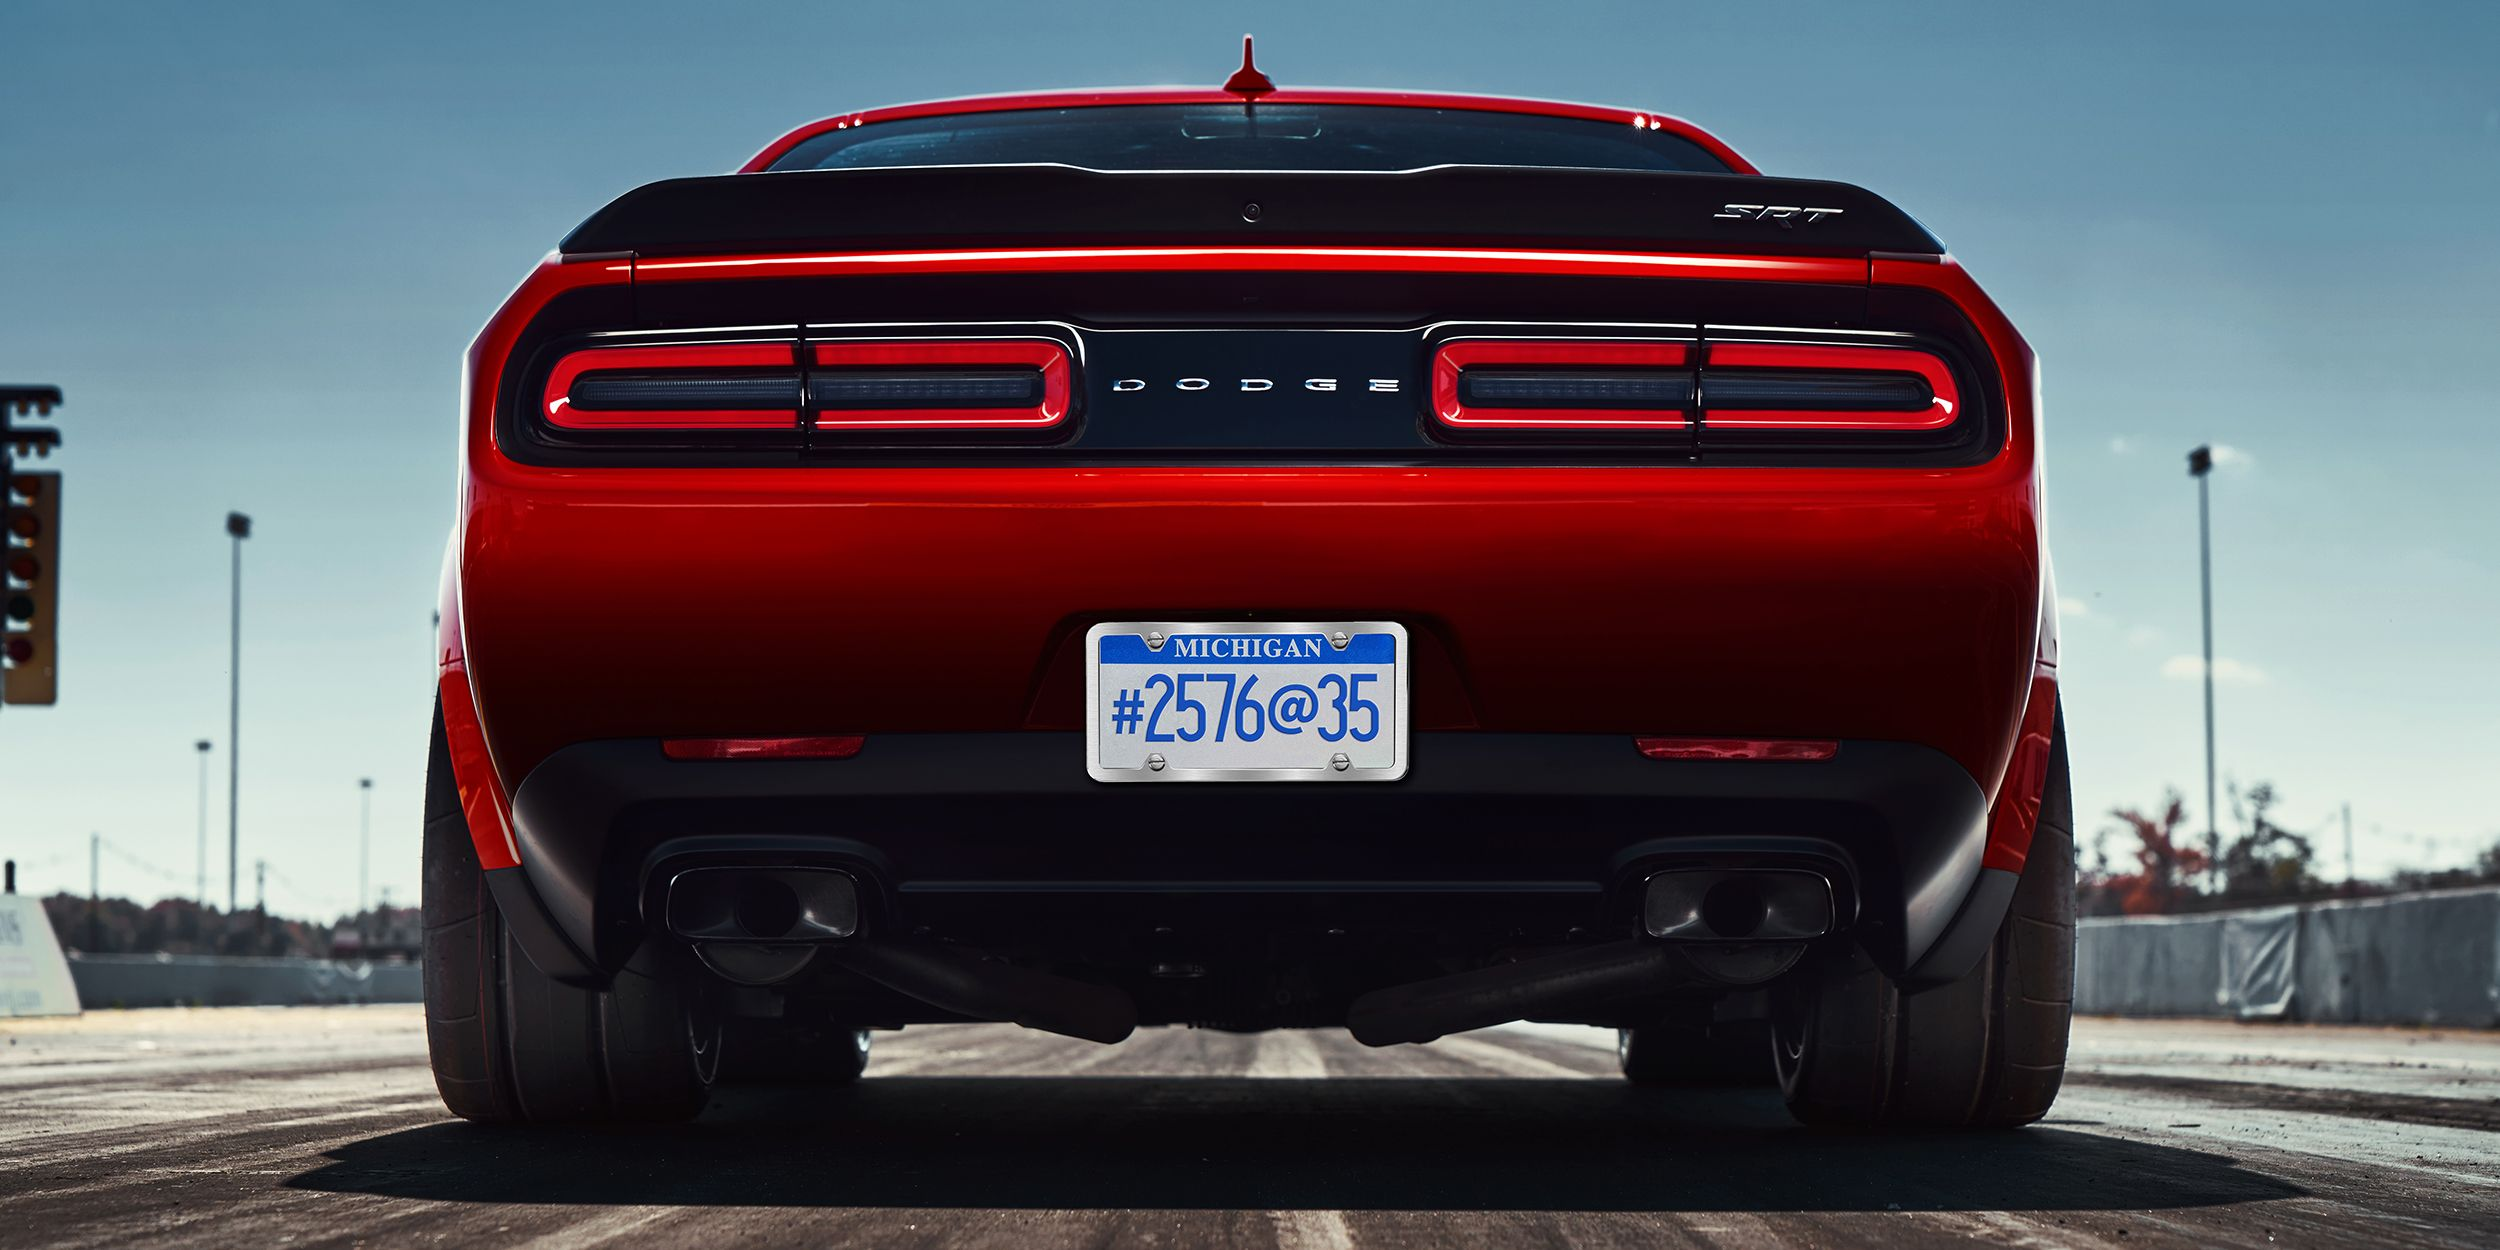 The 2018 Dodge Challenger Srt Demon Wears 315 Width Drag Radials Front And Rear